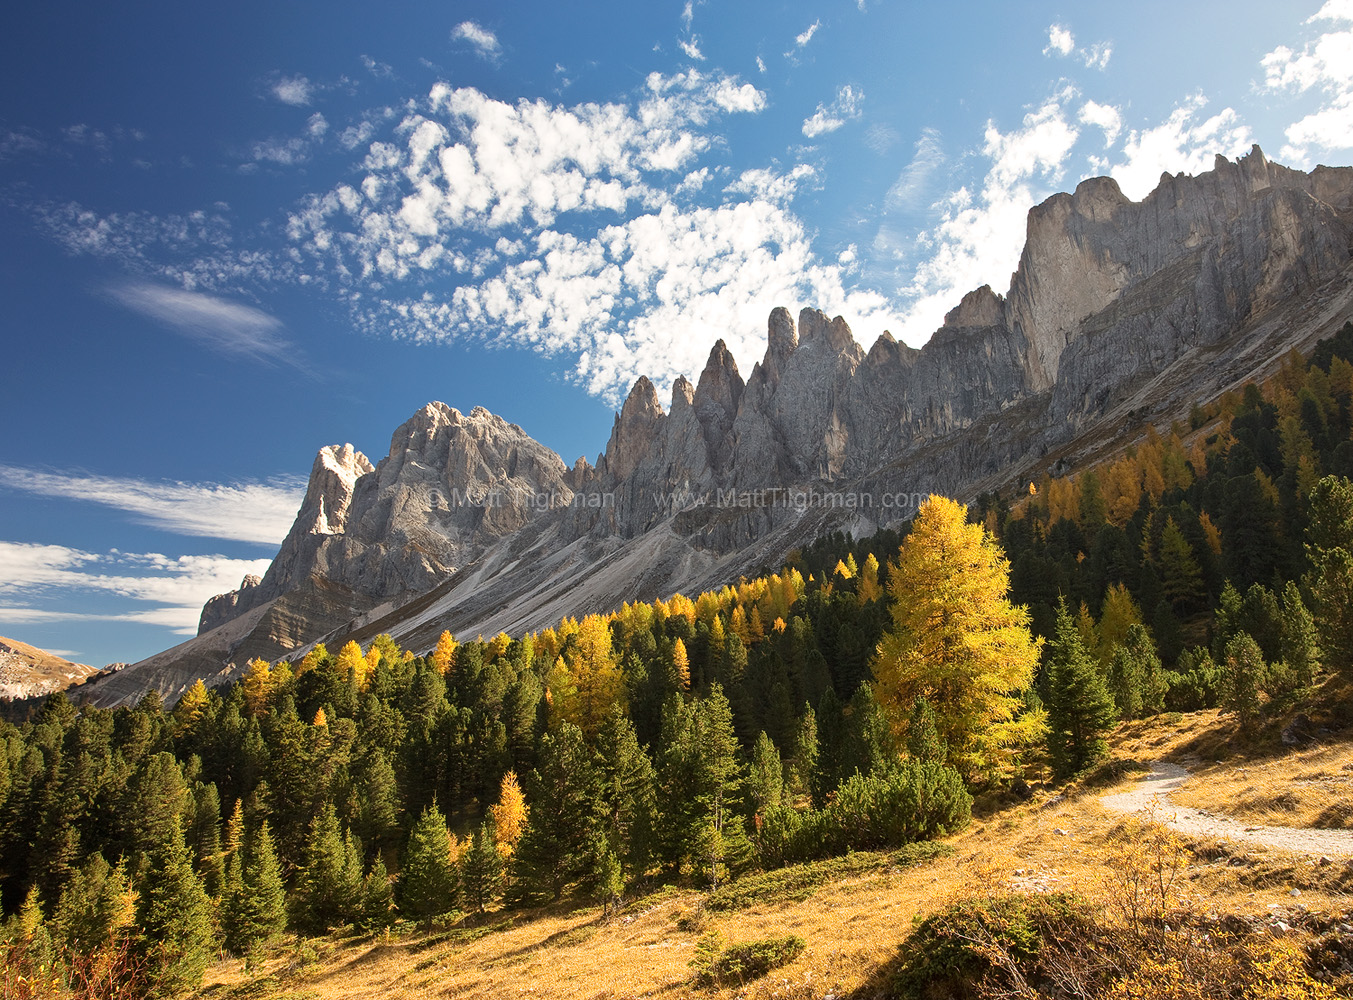 Fine art stock photograph of the Odle group of mountains in the Dolomites of Italy. The European Larches at this elevation are among the first to change color.